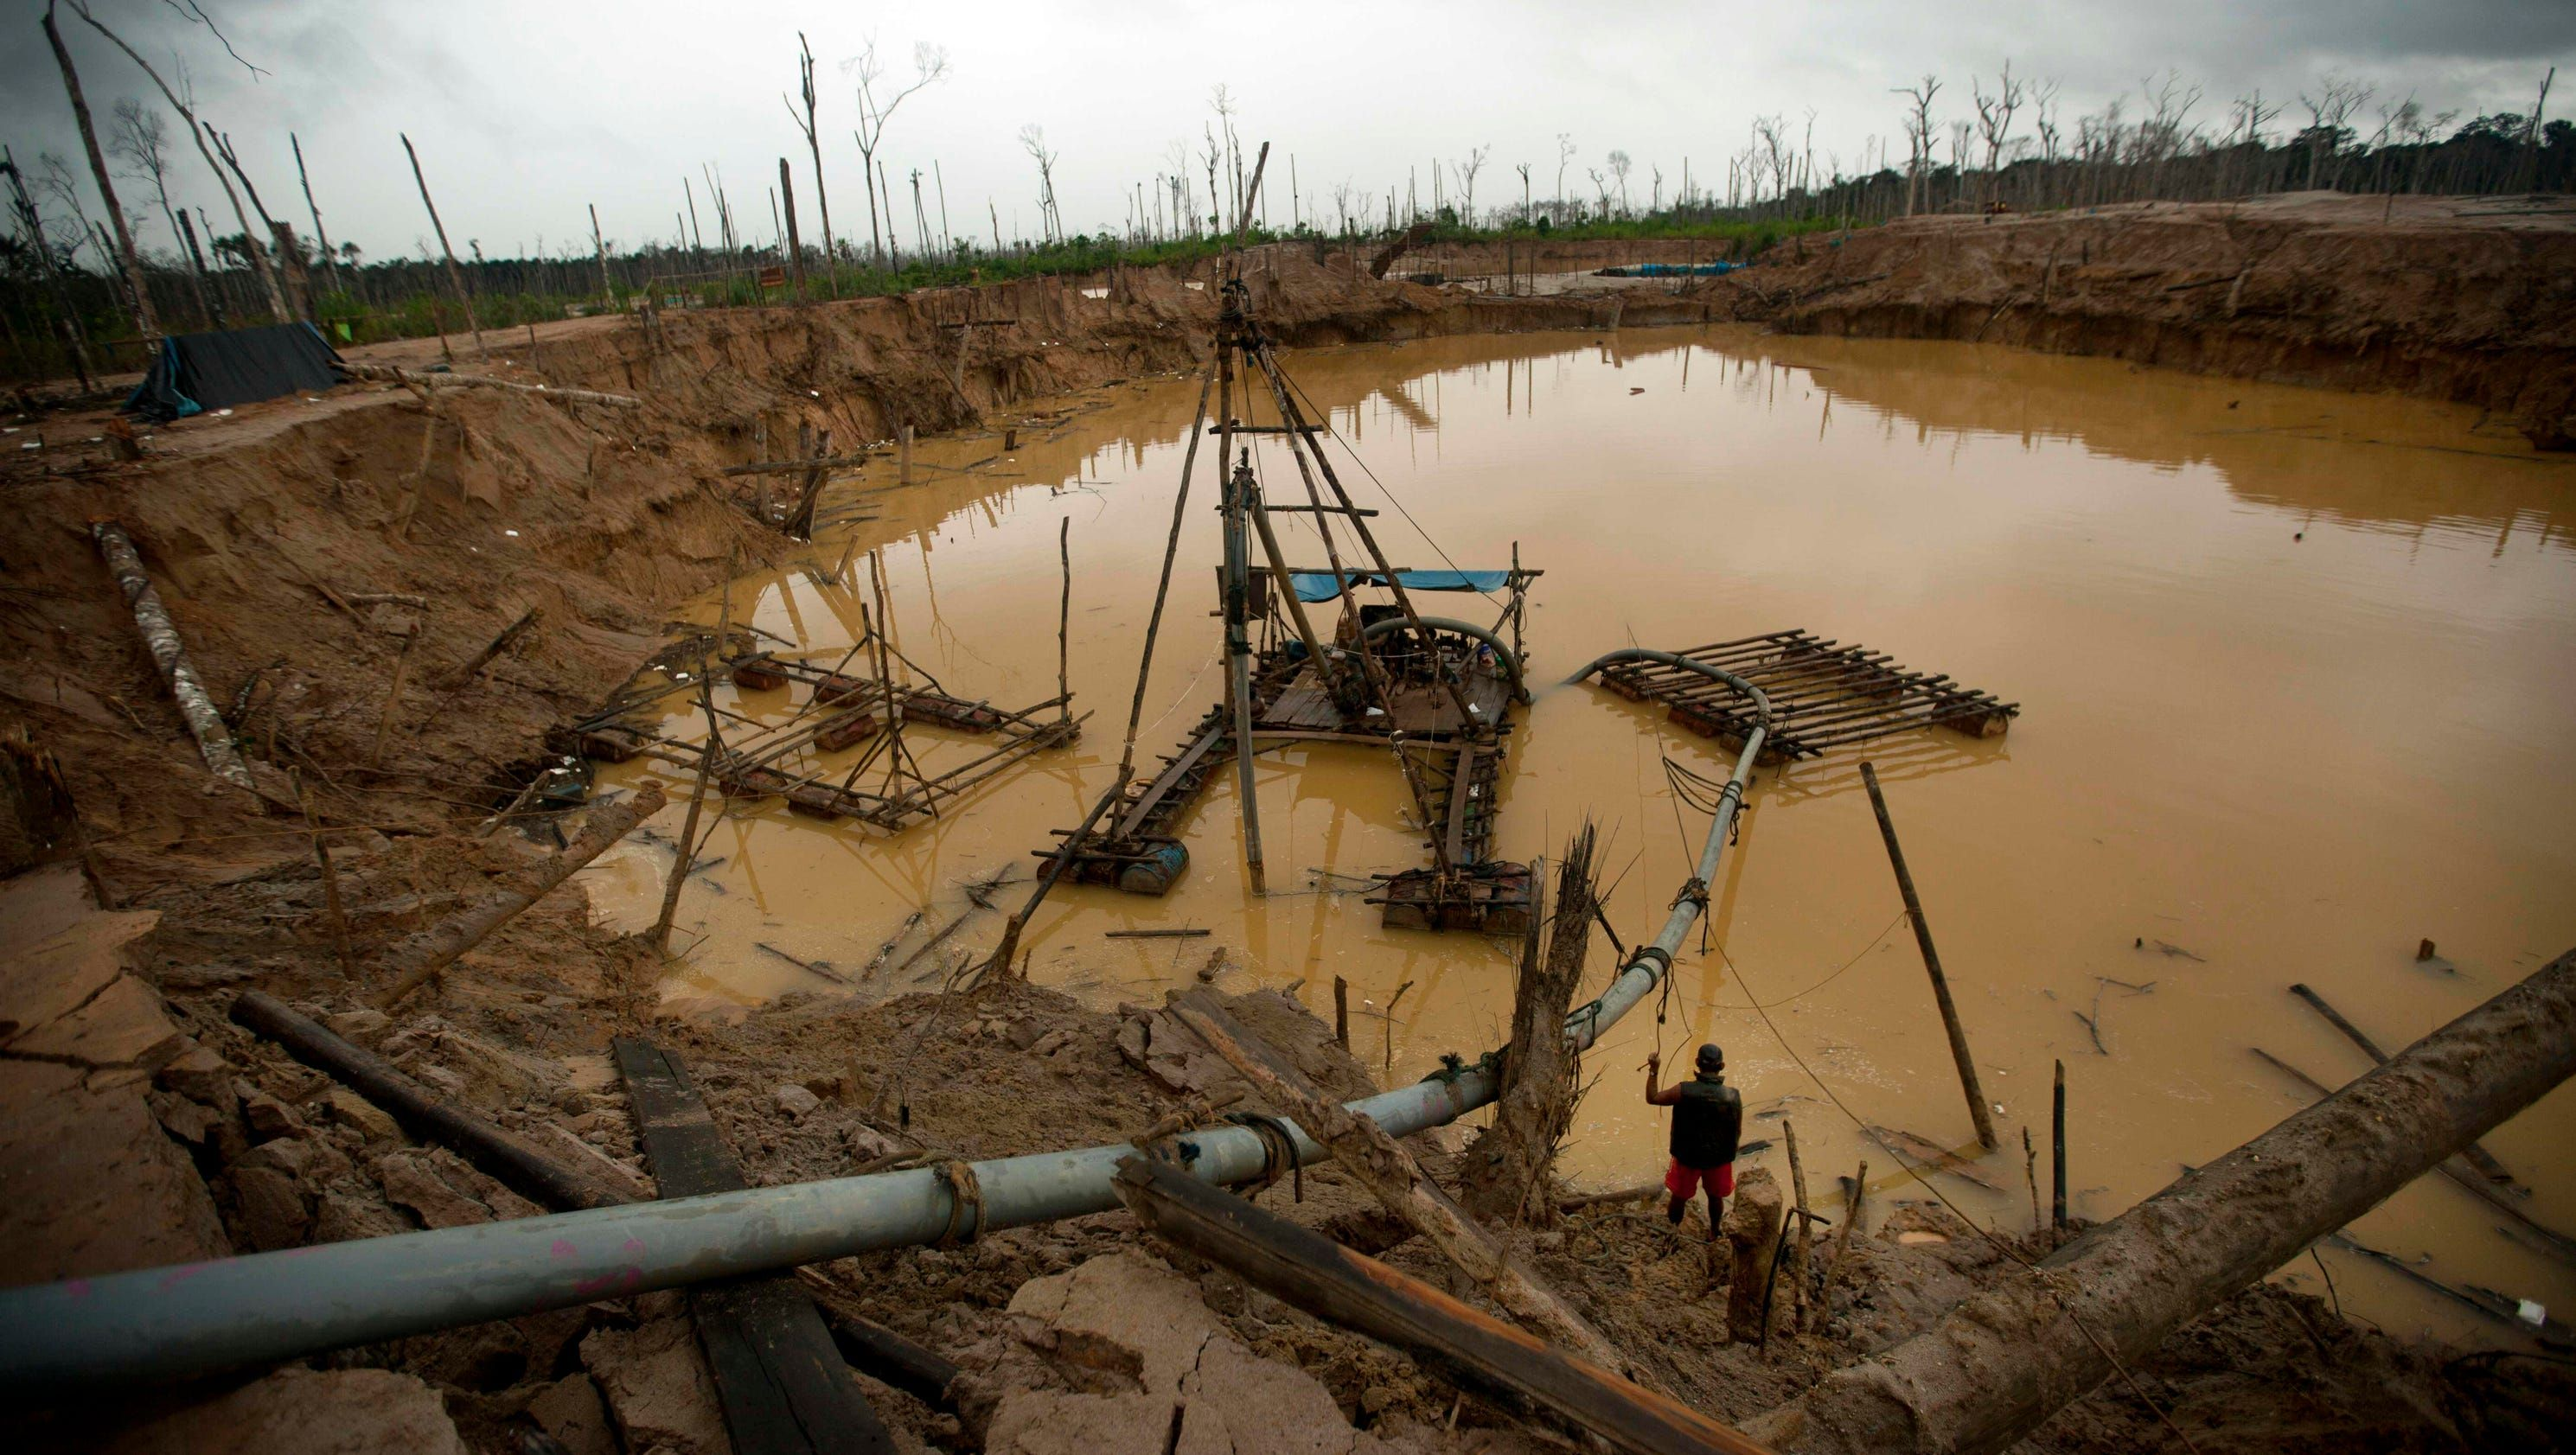 Peru's illegal gold mines are devastating the Amazon rain forest